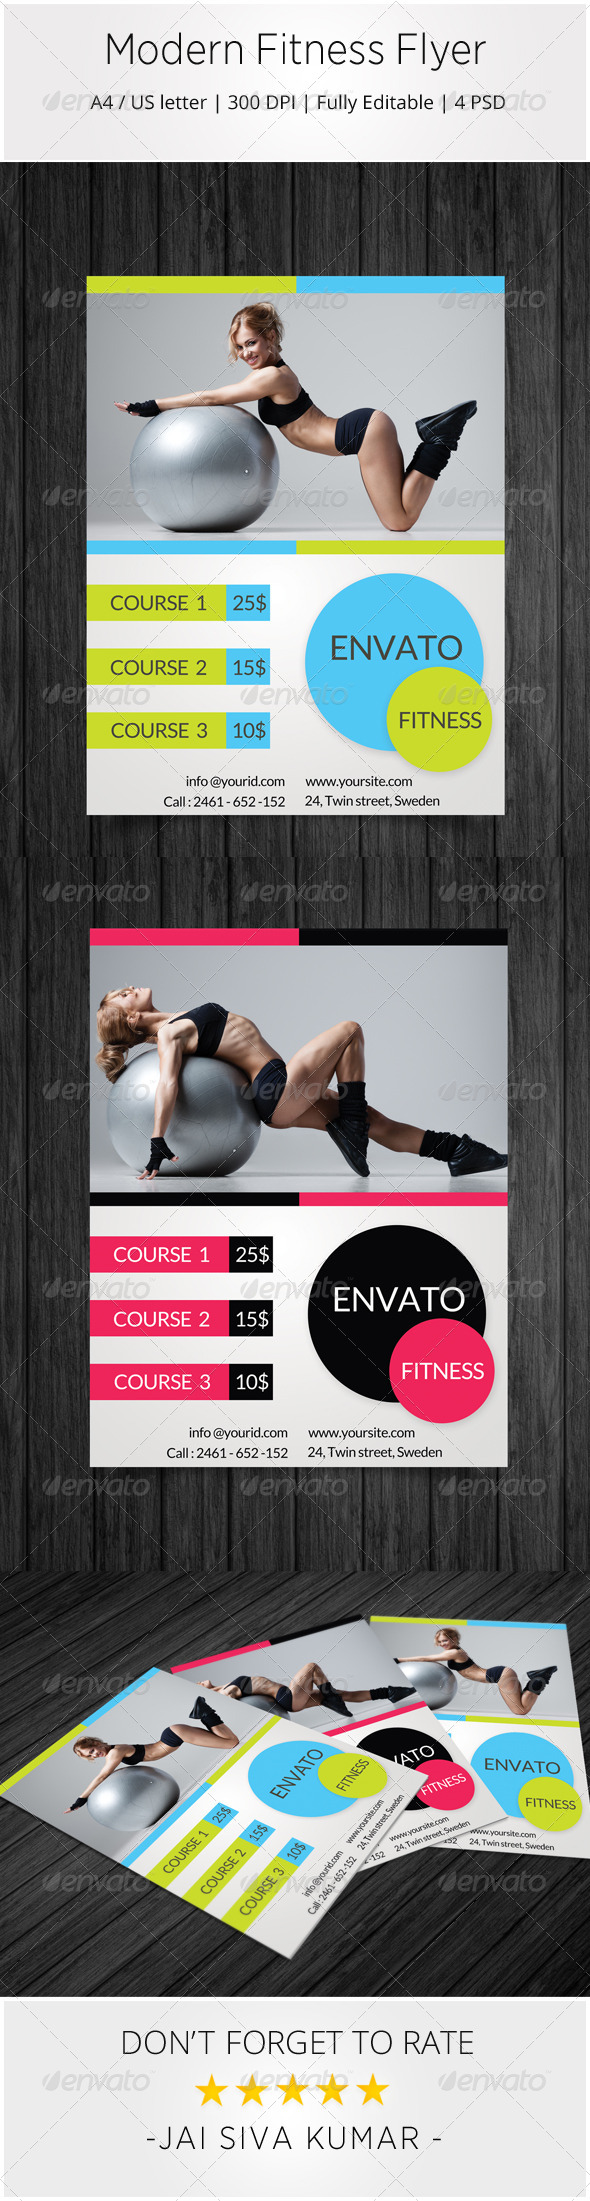 GraphicRiver Modern Fitness Flyer 7016222